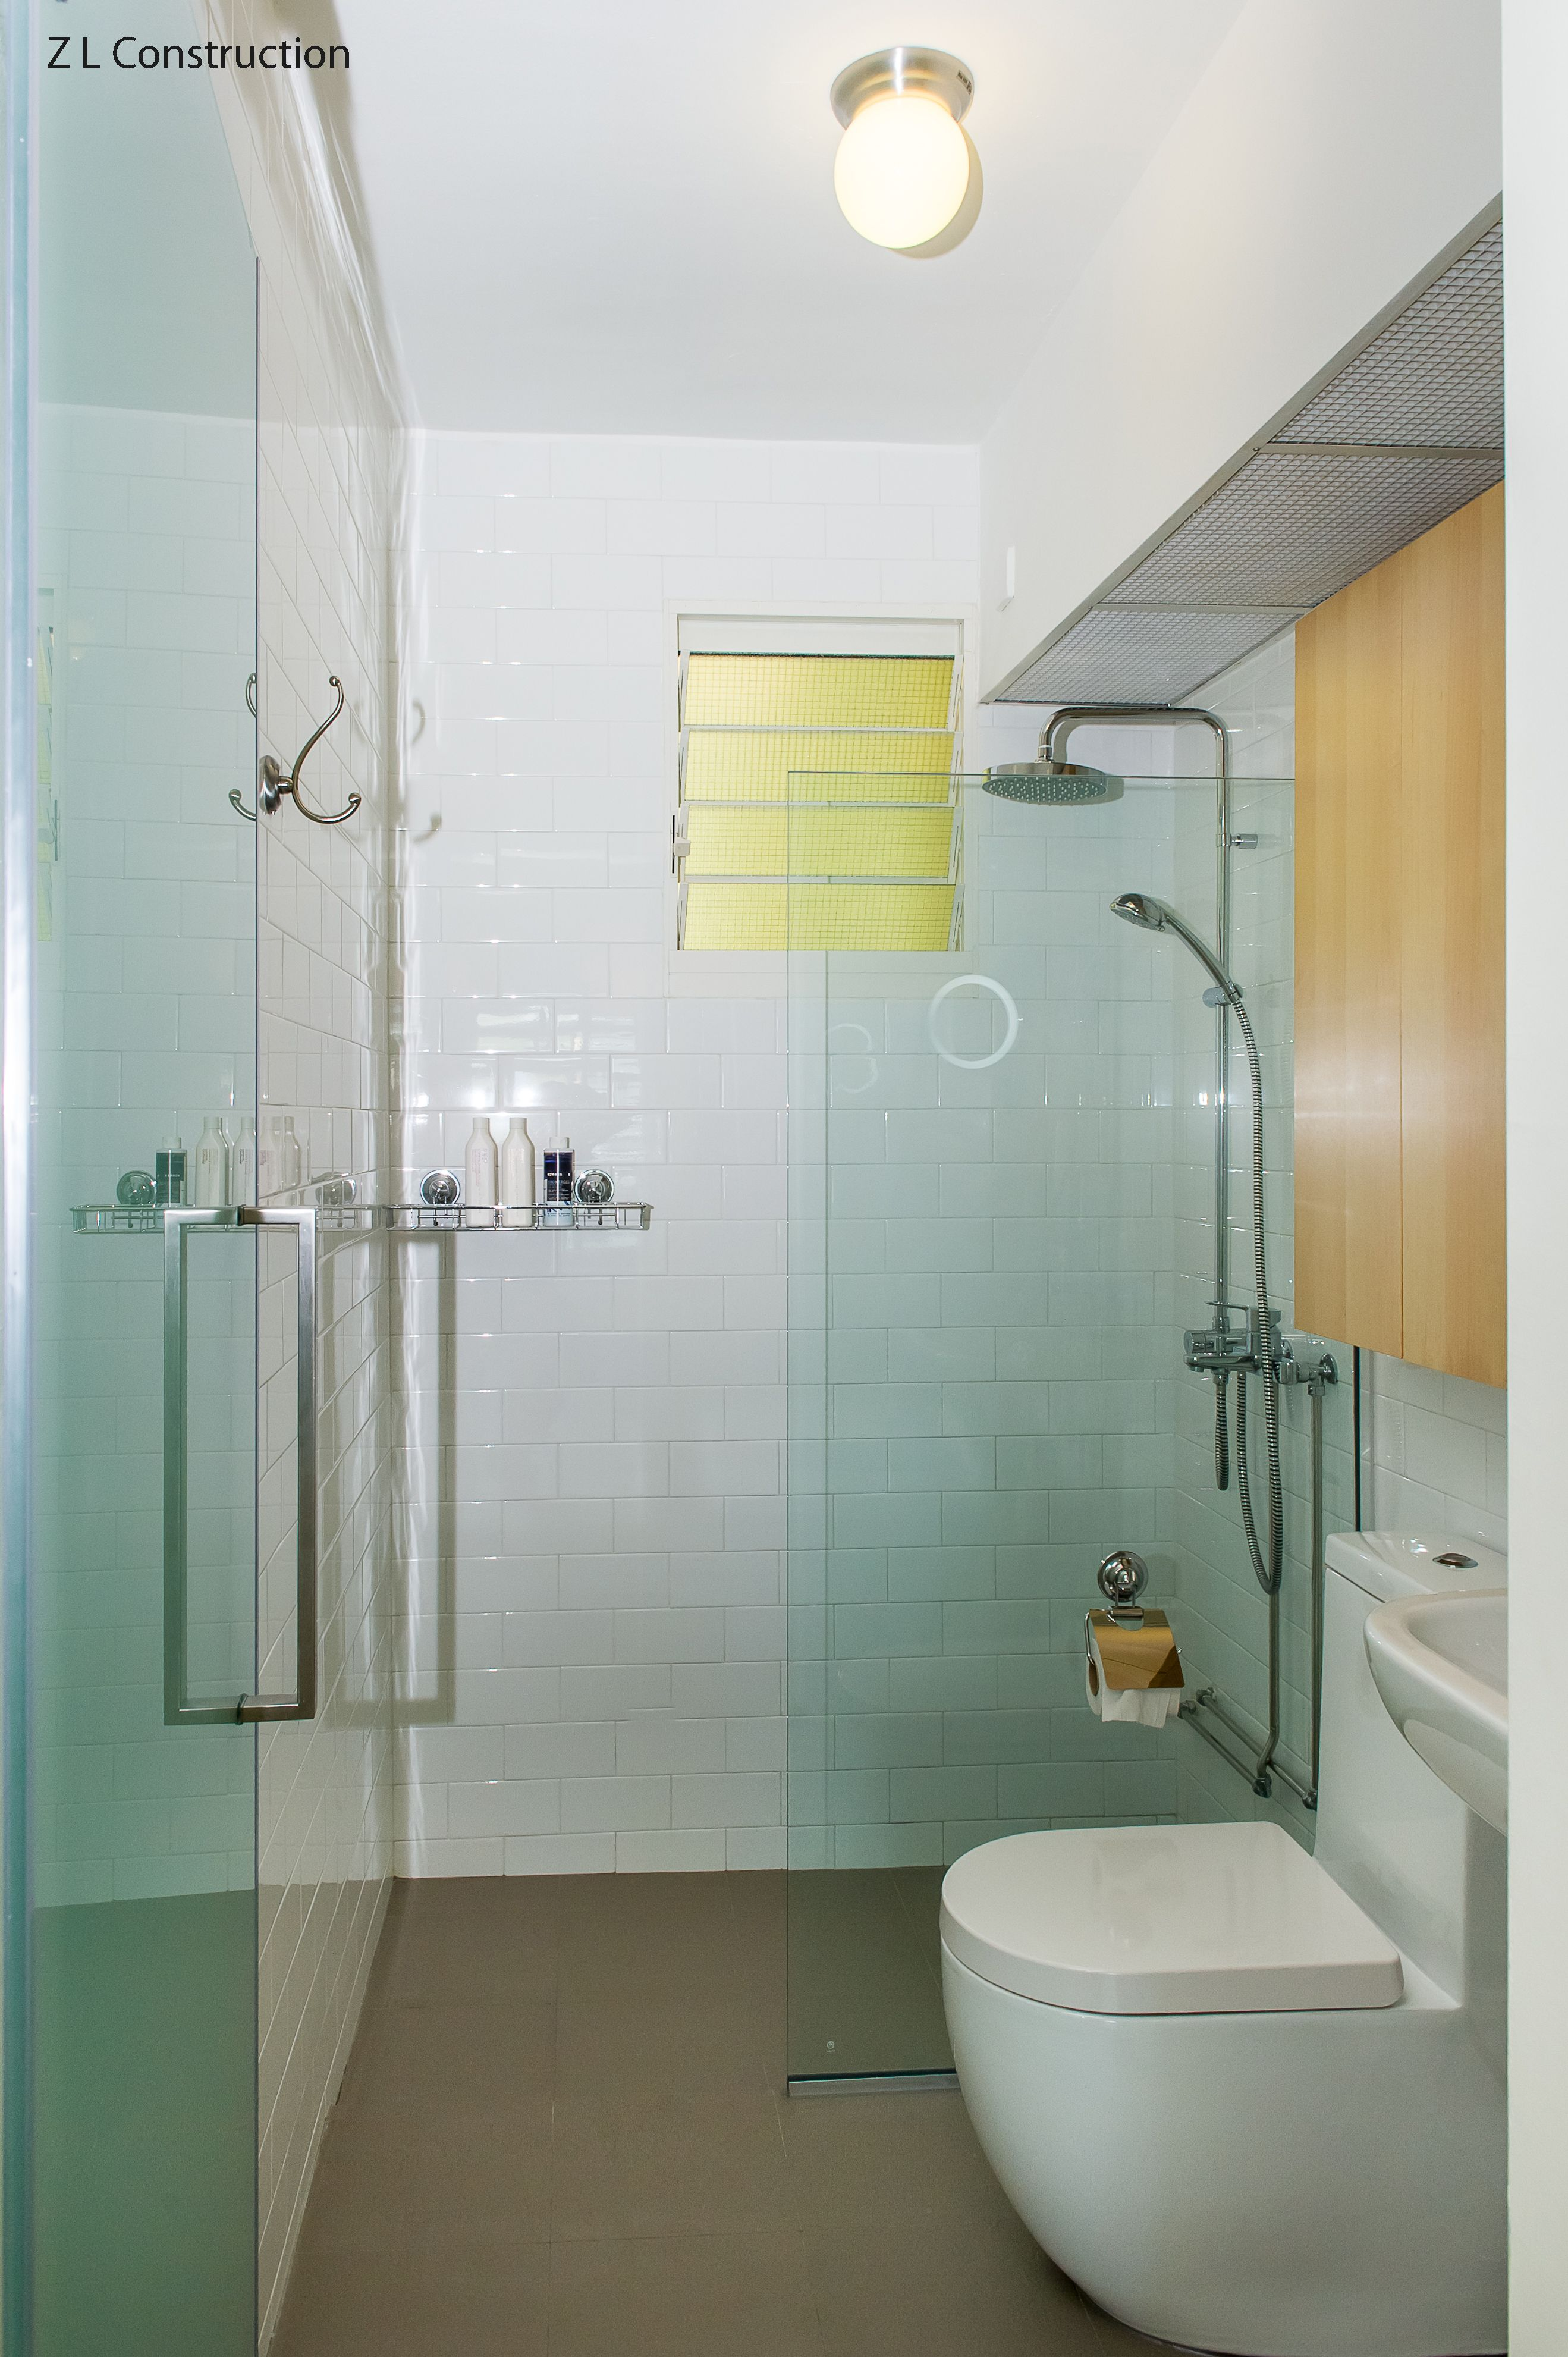 Z l construction singapore hdb bathroom with glass for Small bathroom design singapore